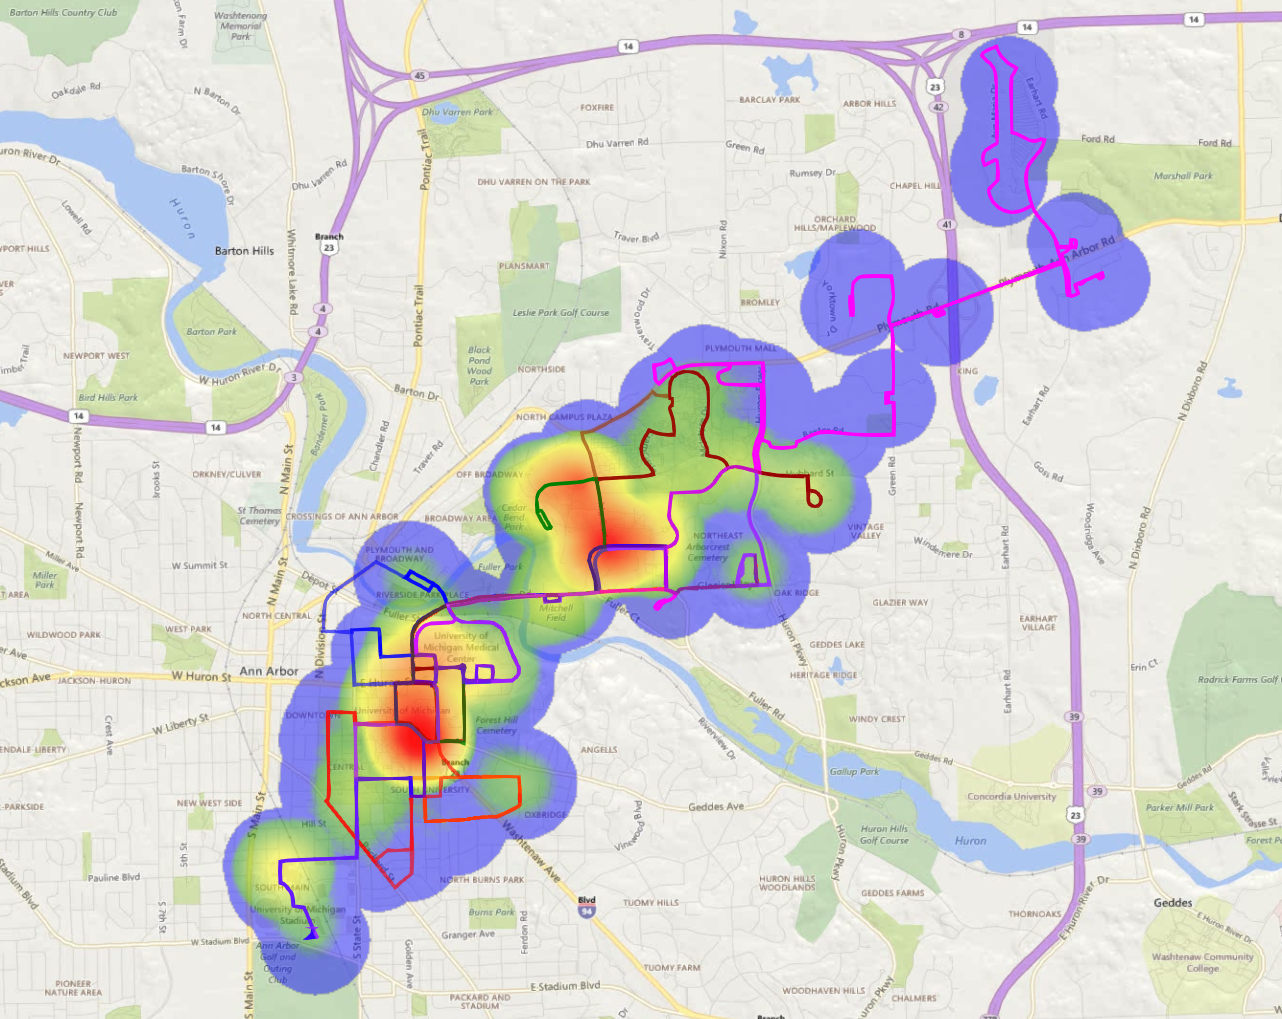 This heatmap shows usage of the current U-M bus system throughout the day. It shows that most usage is concentrated in a few high-traffic areas, while other areas show far less usage. Image credit: Courtesy of Pascal Van Hentenryck